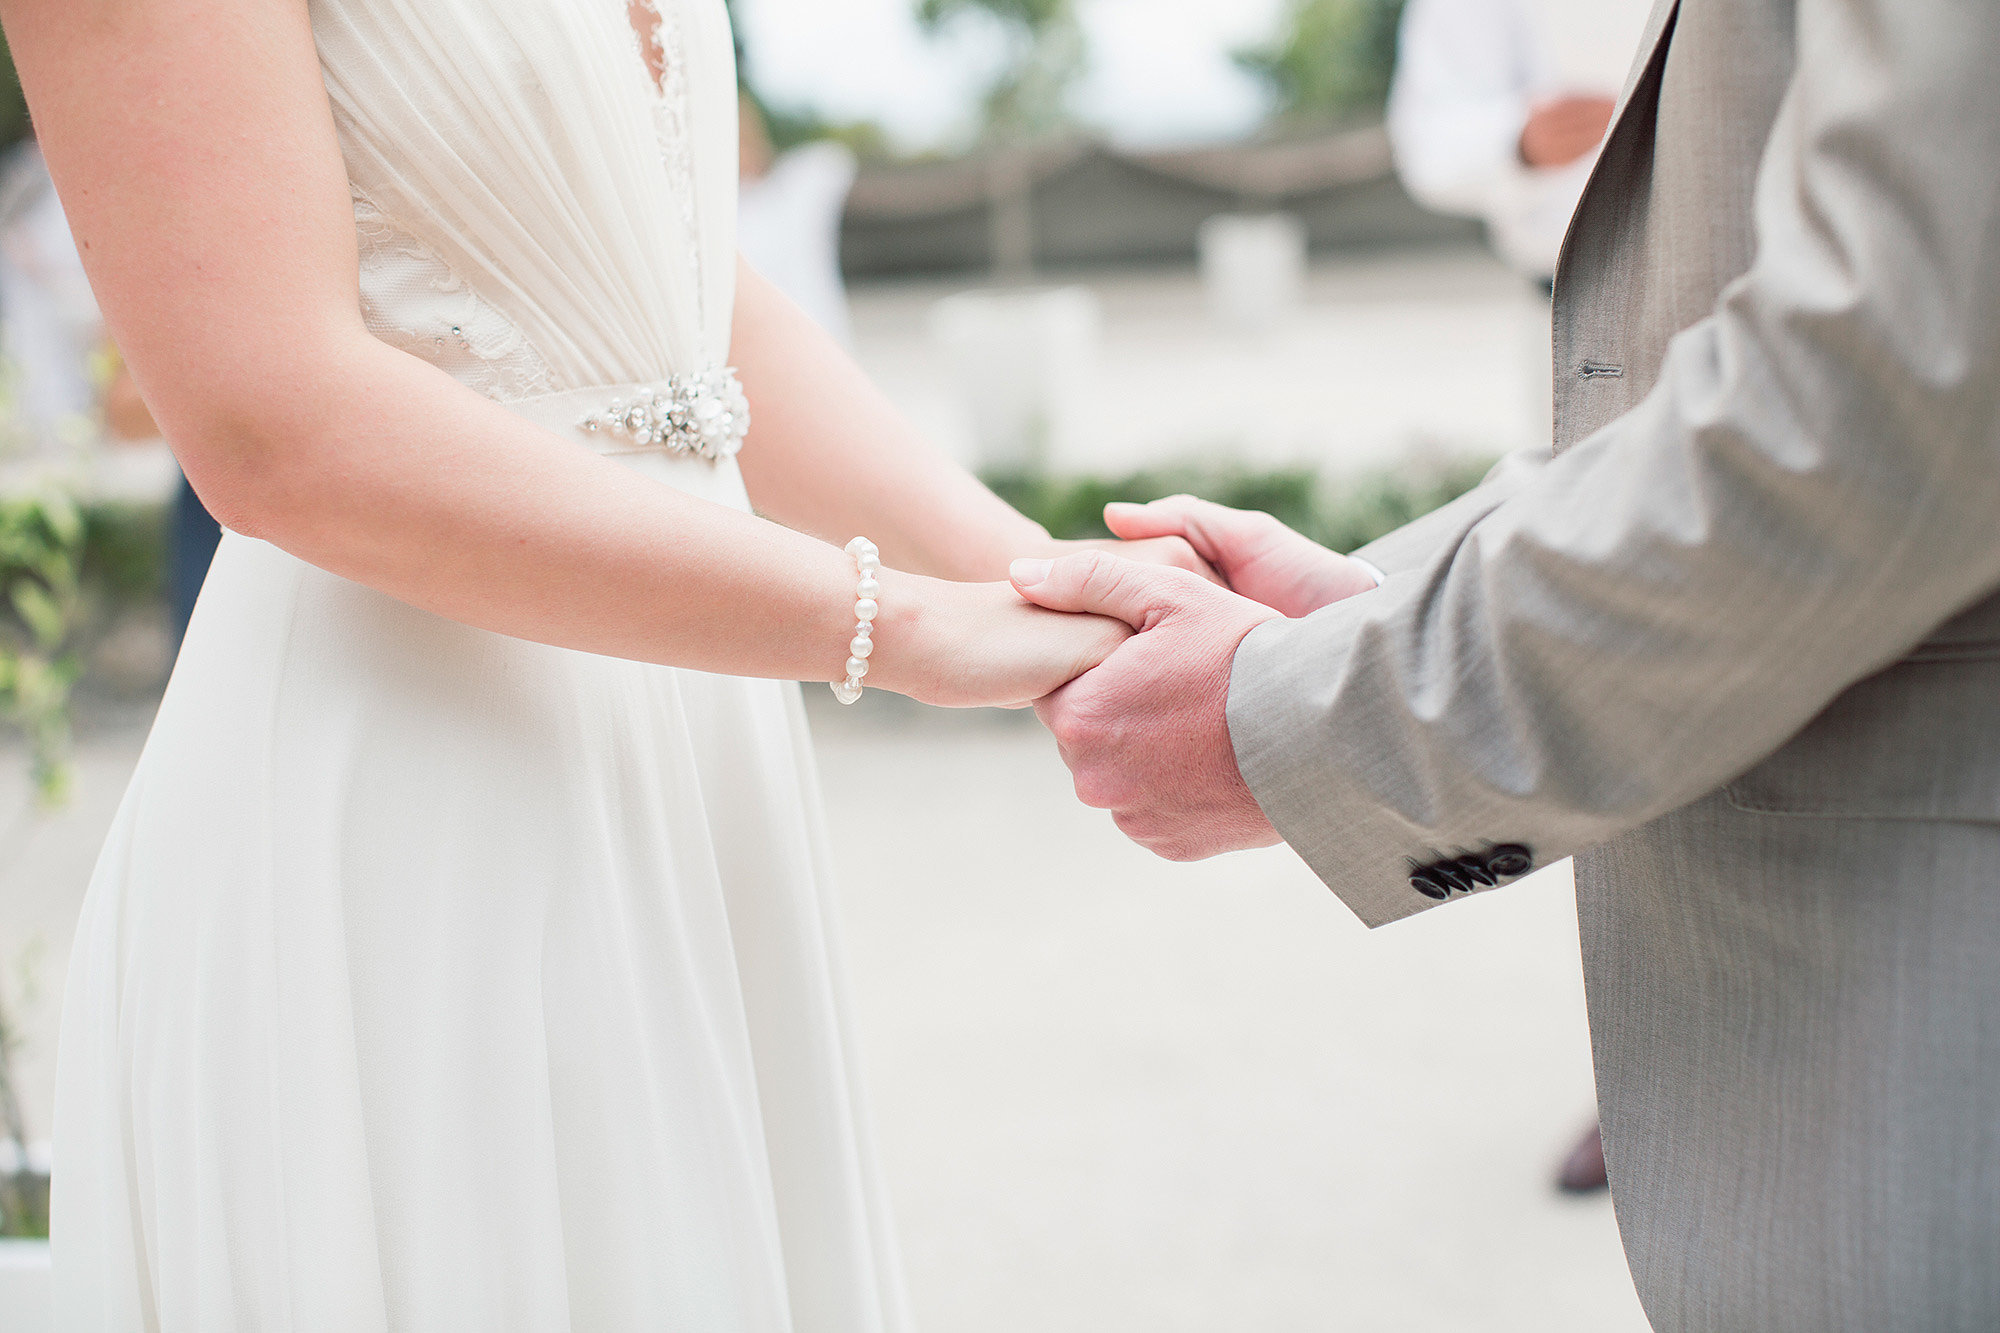 Who Pays For What In A Wedding